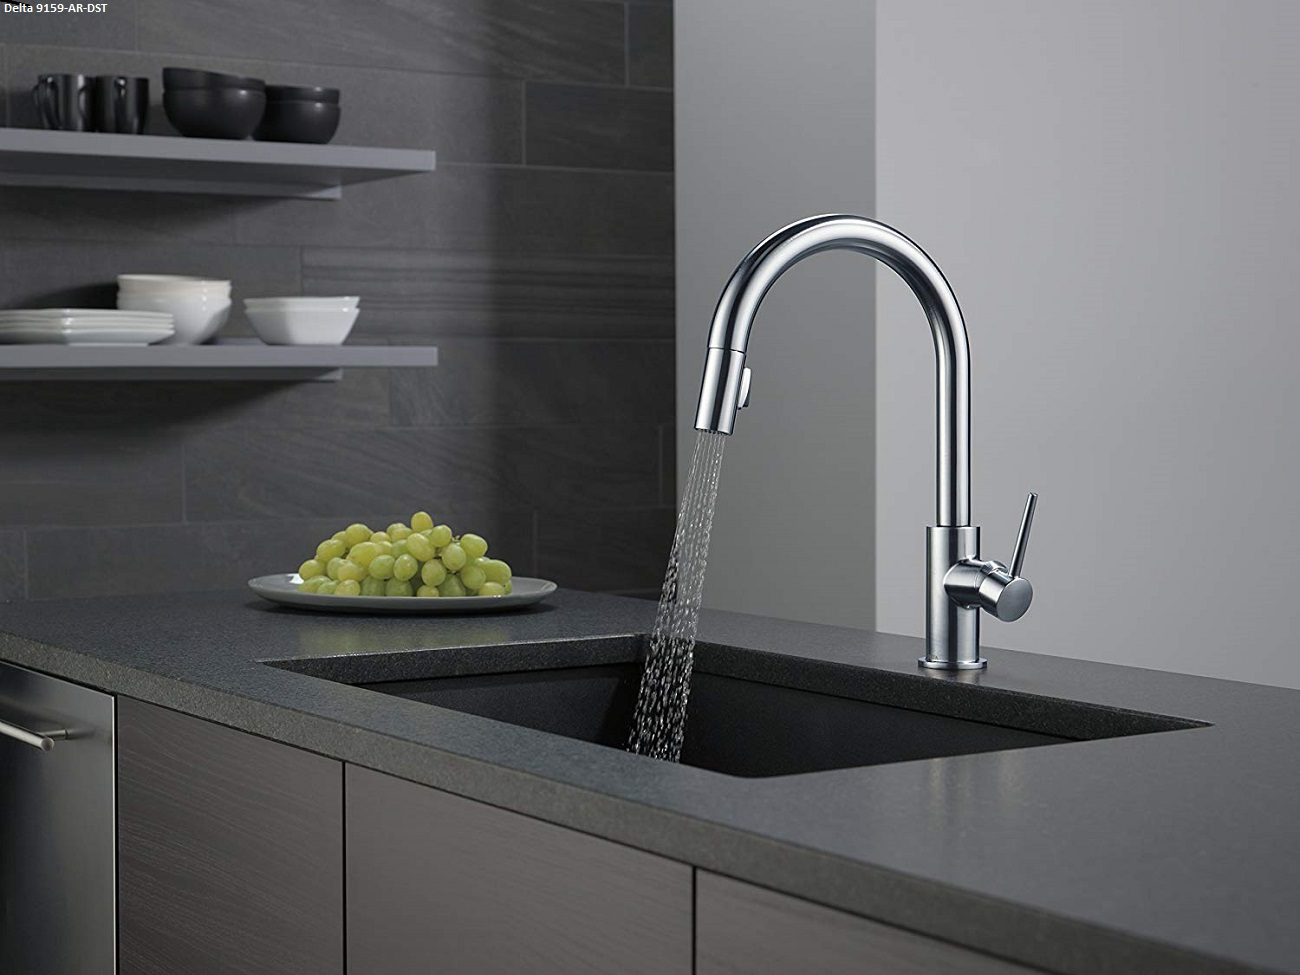 6 Great Kitchen Faucets Under 200 Dollars - Inexpensive and Well-Designed